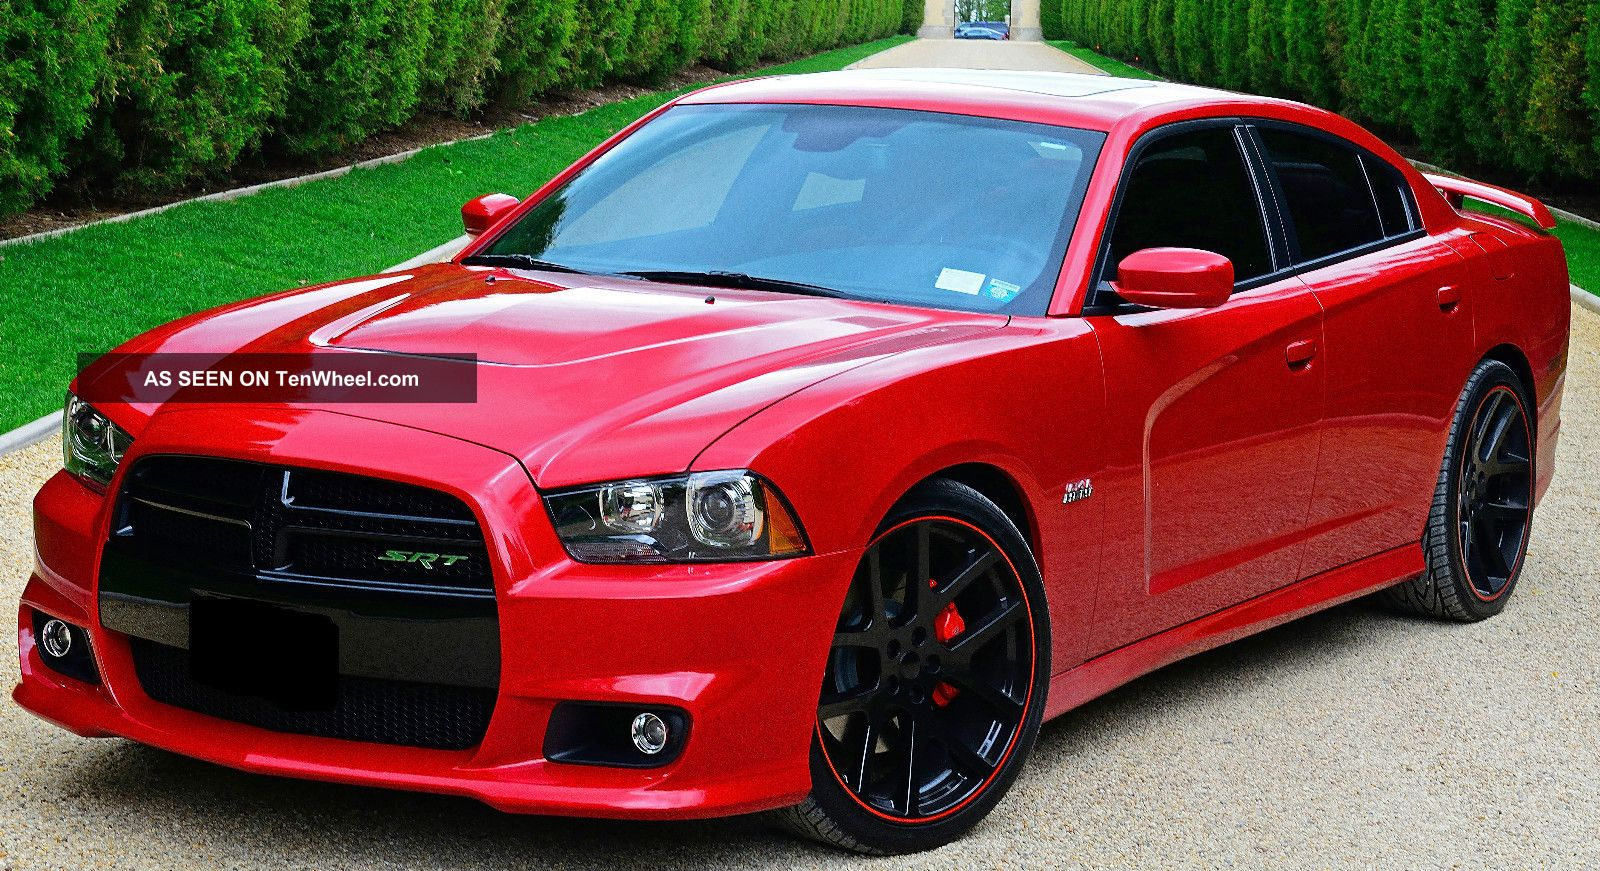 2012 And Rare Looking Dodge Charger Srt8 Limited